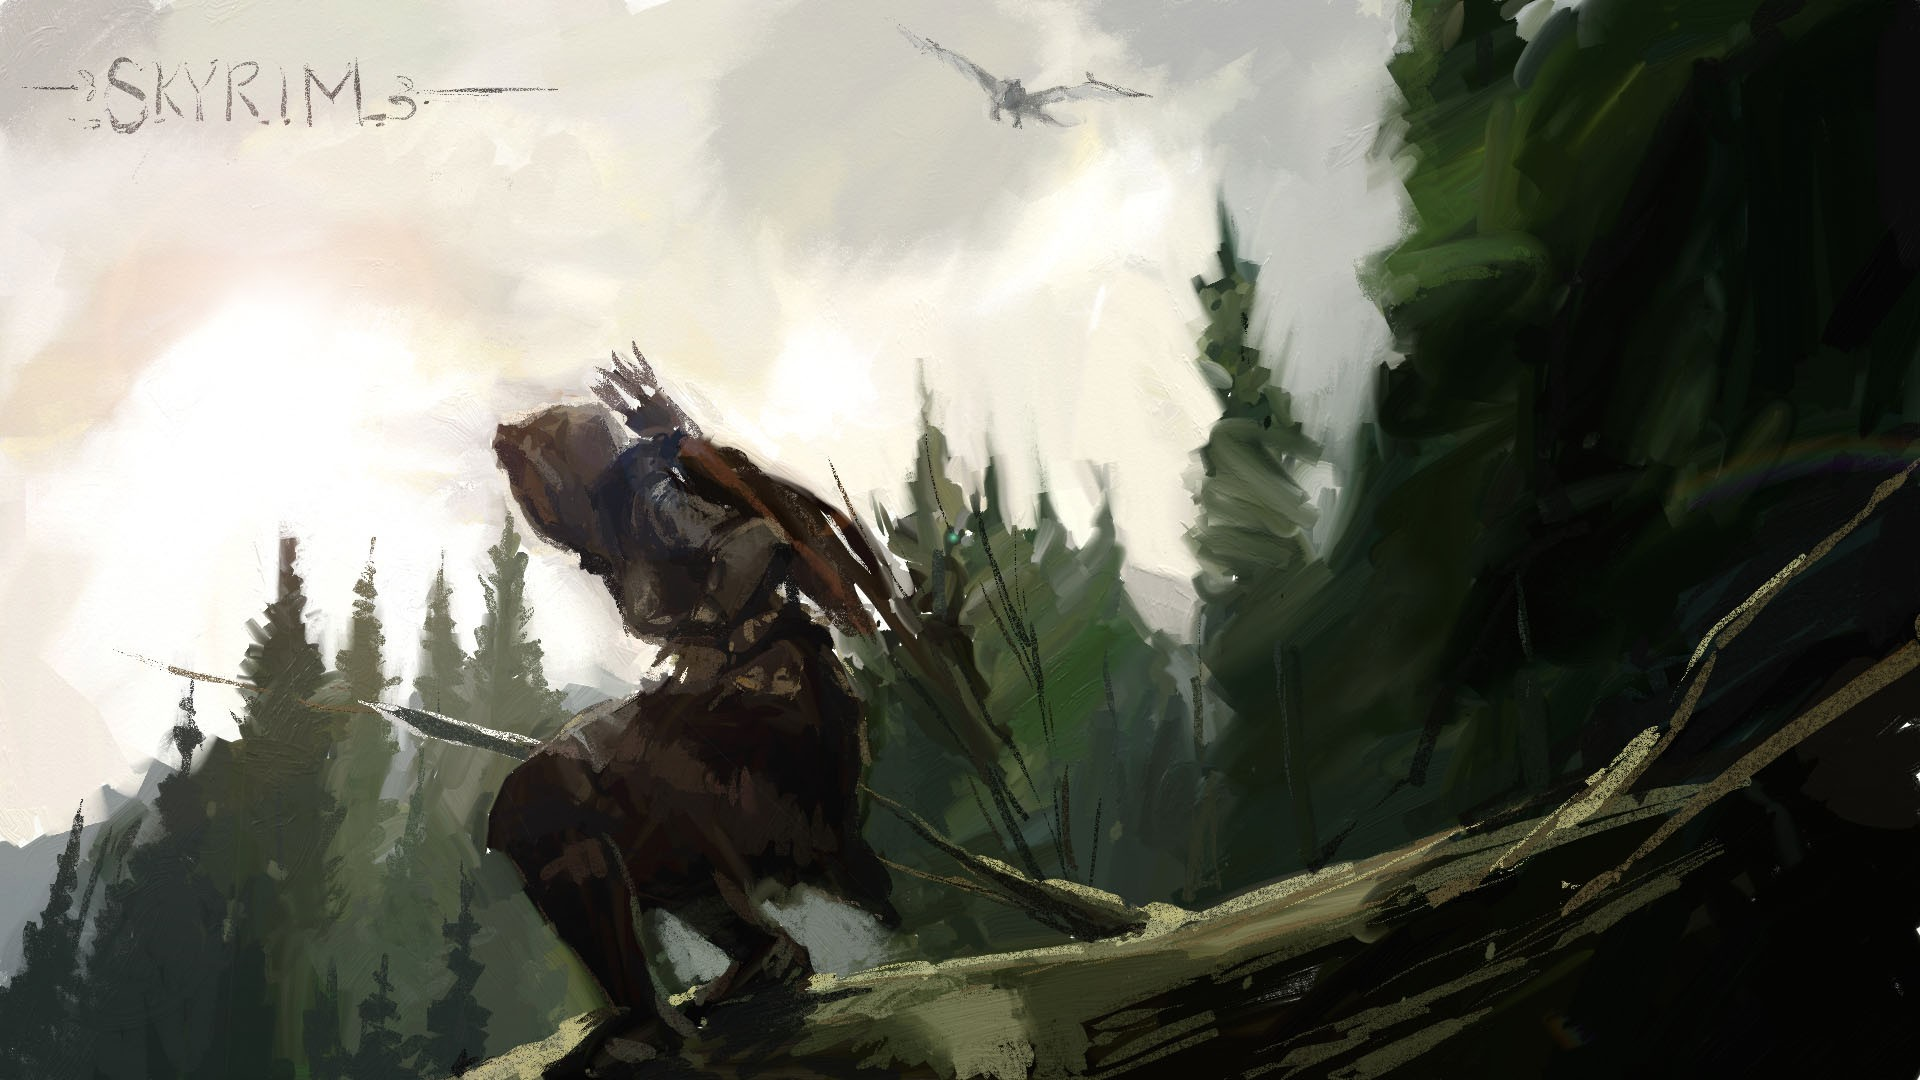 skyrim paint art wallpapers - photo #5